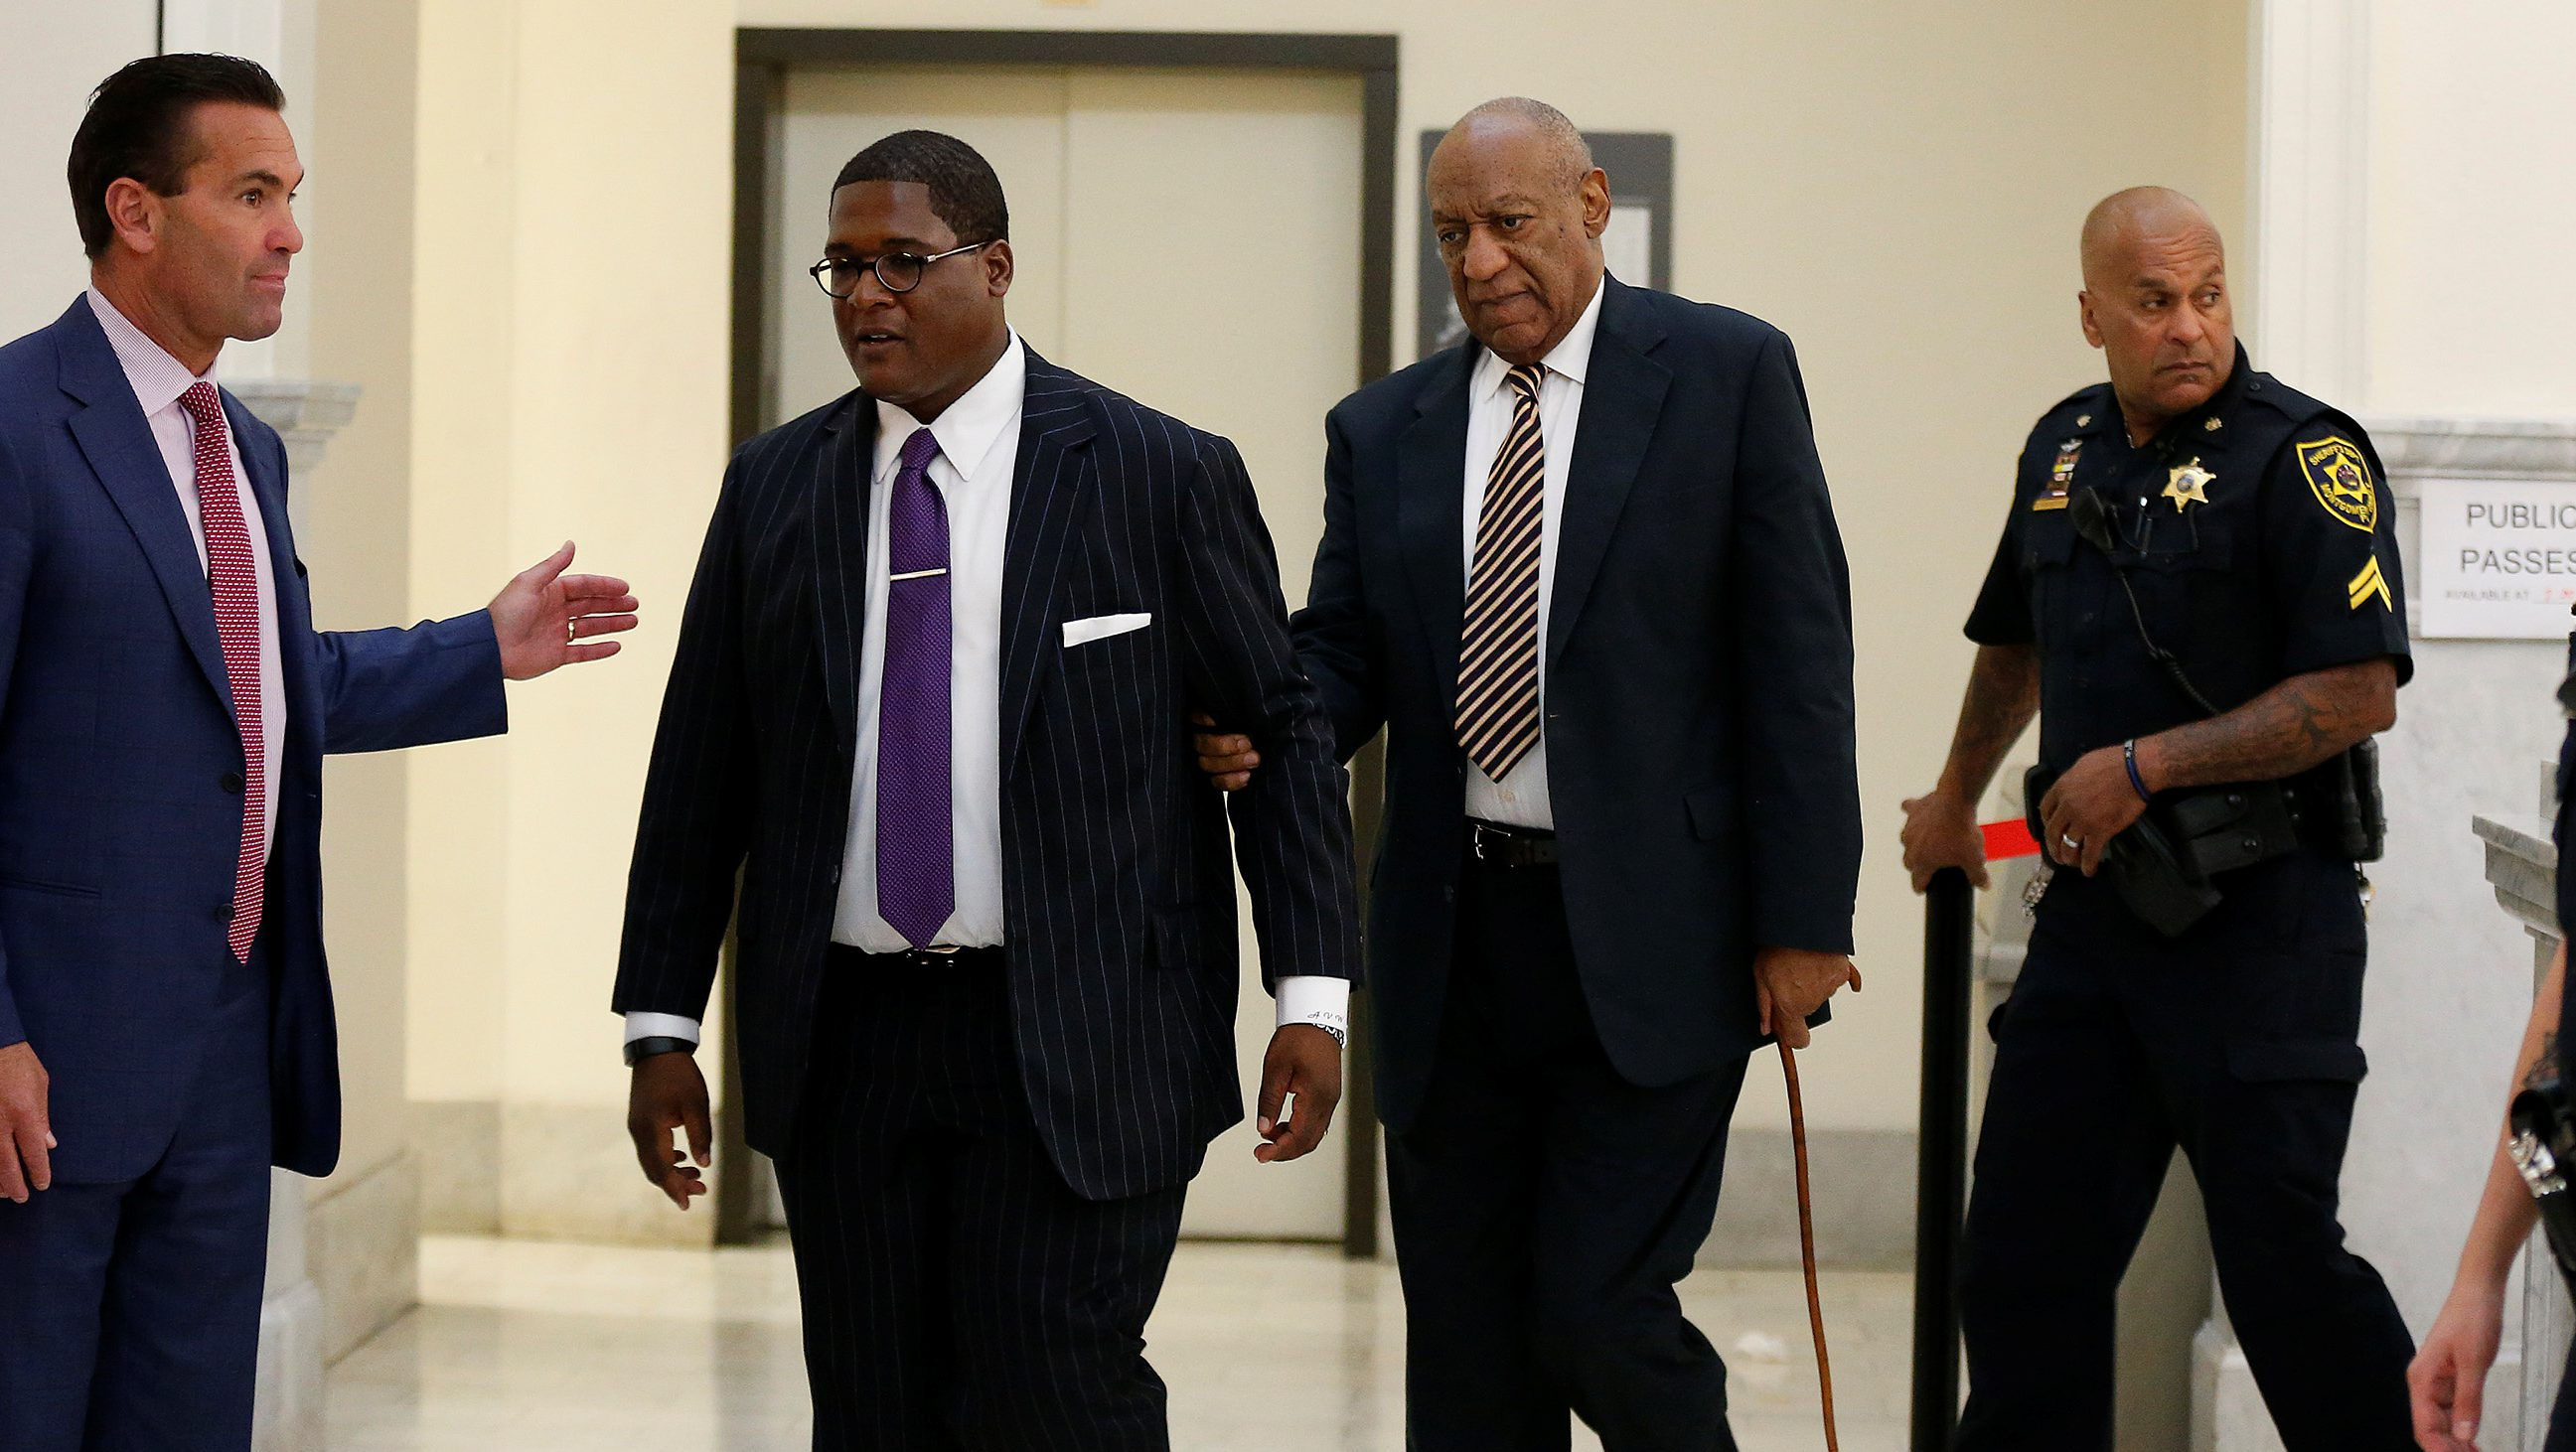 Lawyer Fortunato N. Perri, Jr.,(L) waits for Andrew Wyatt (2nd L) to guide Bill Cosby back to the courtroom after lunch on the first day of Cosby's trial for sexual assault at the Montgomery County Courthouse in Norristown, Pennsylvania, U.S. June 5, 2017.  REUTERS/David Maialetti/Pool - RTX395OO